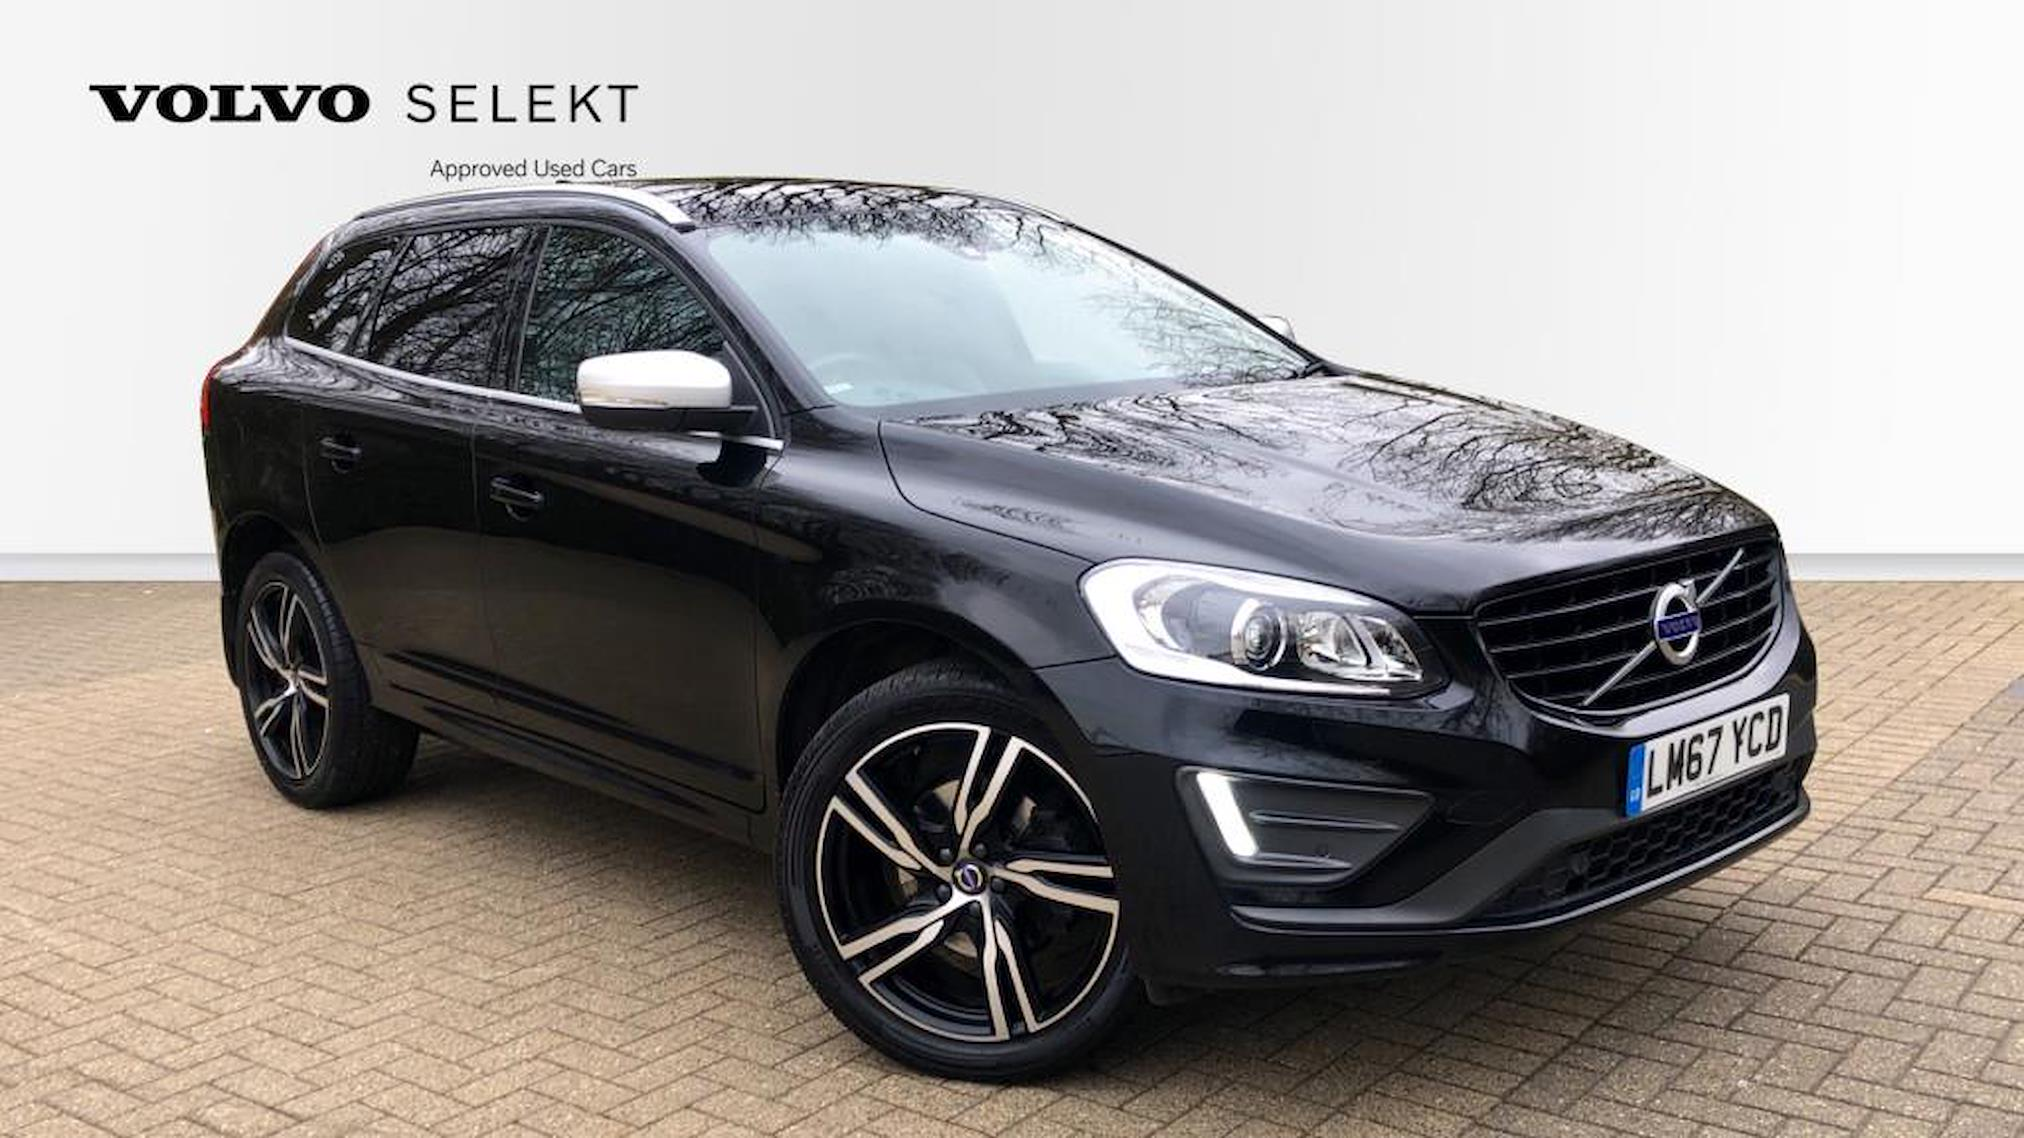 Used XC60 VOLVO D4 [190] R Design Lux Nav 5Dr Geartronic